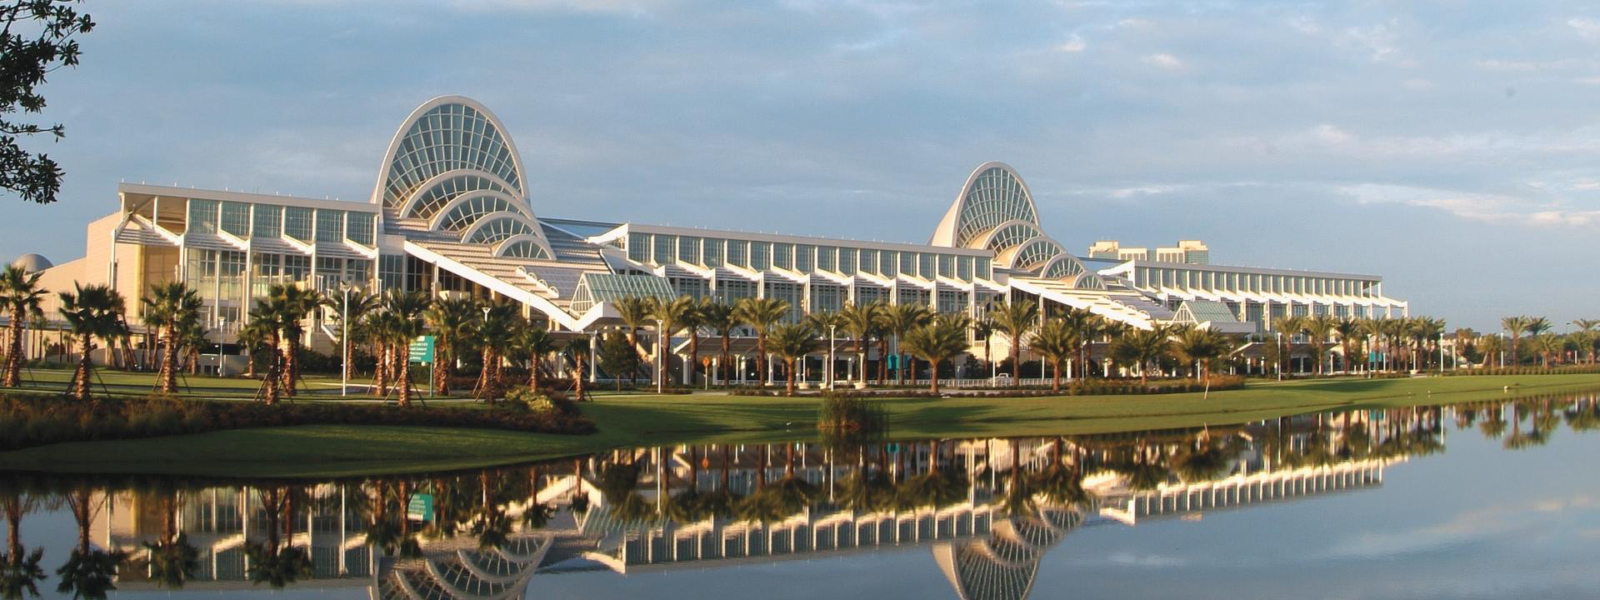 Panoramic view of the Orange County Convention Center.